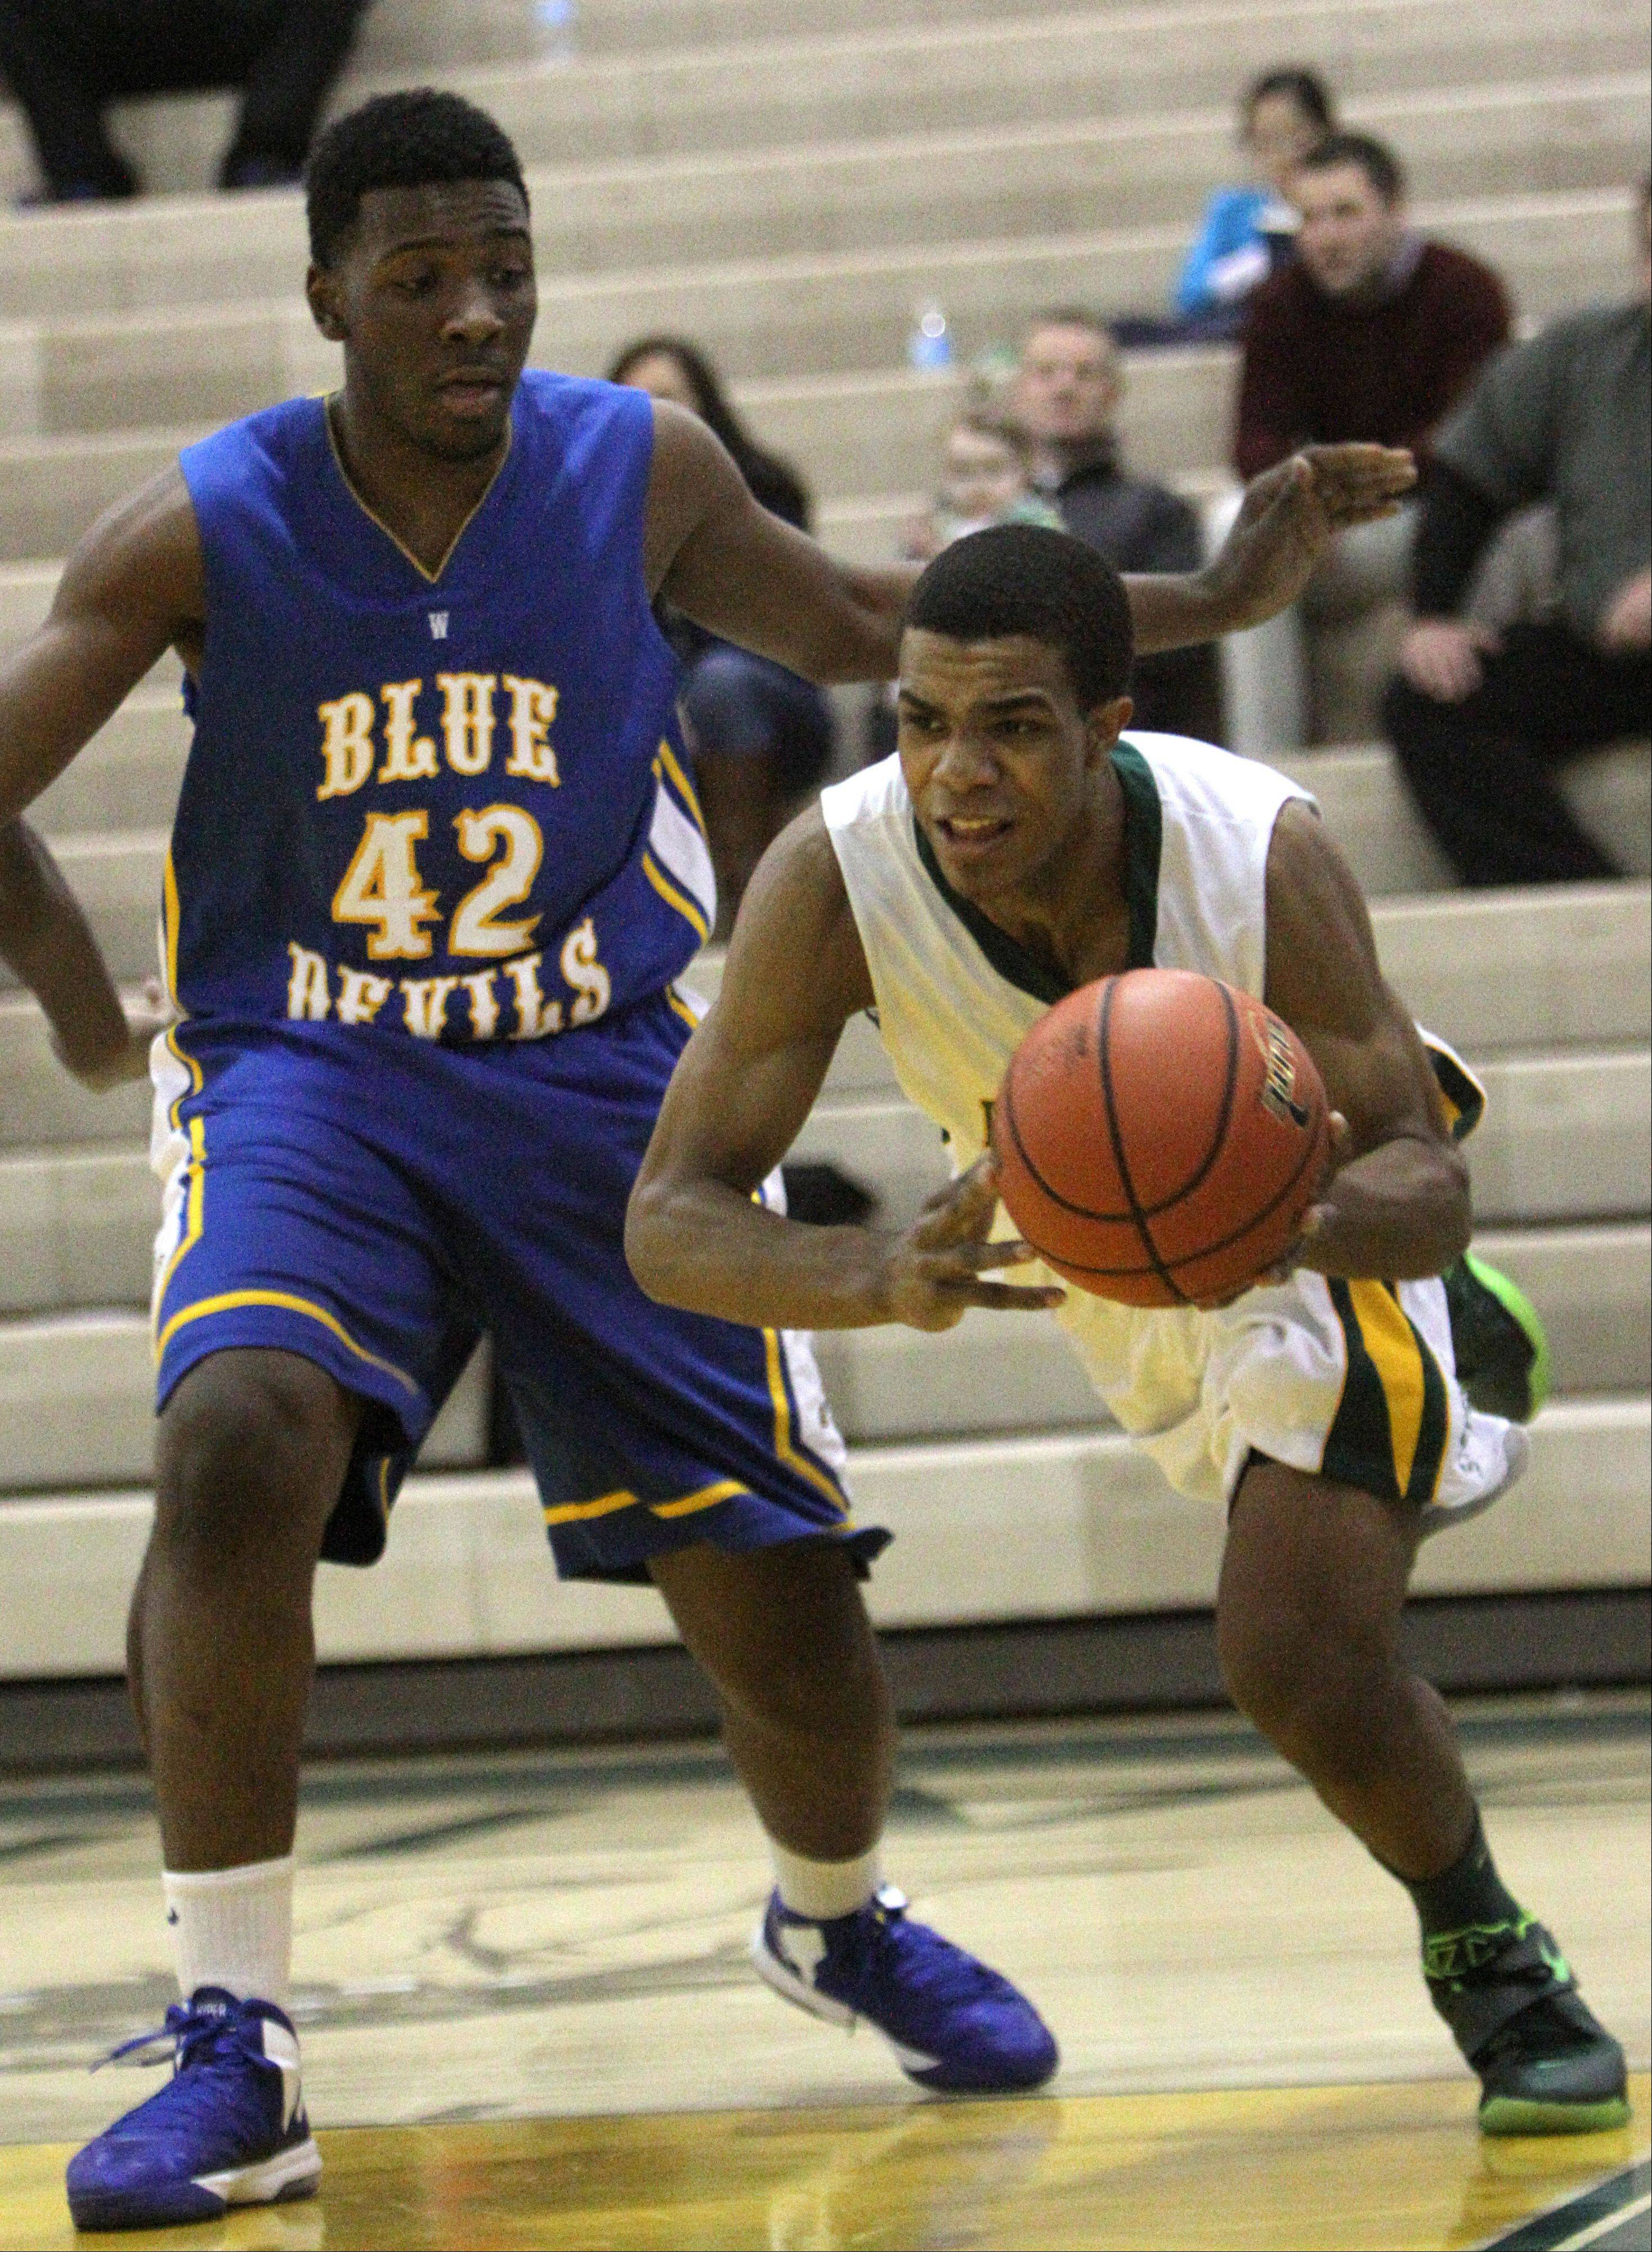 Stevenson's Connor Cashaw, right, drives on Warren's Dre Von Hill.